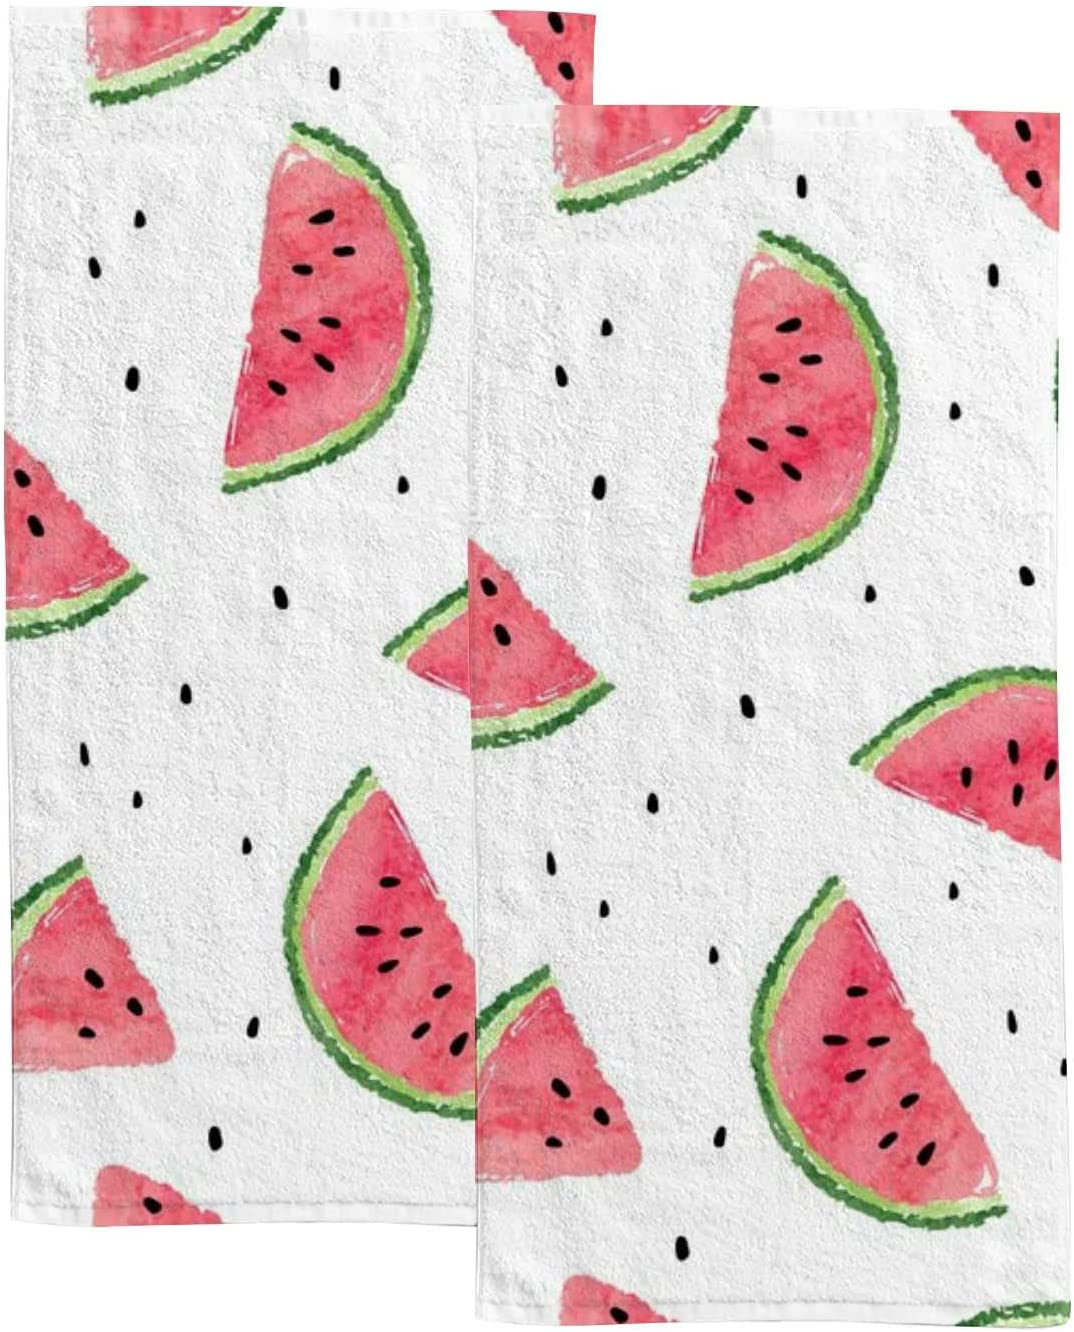 Summer Watermelon Fruit Hand Towels New Shipping Free Set Bathroom T 2 for NEW before selling Kitchen